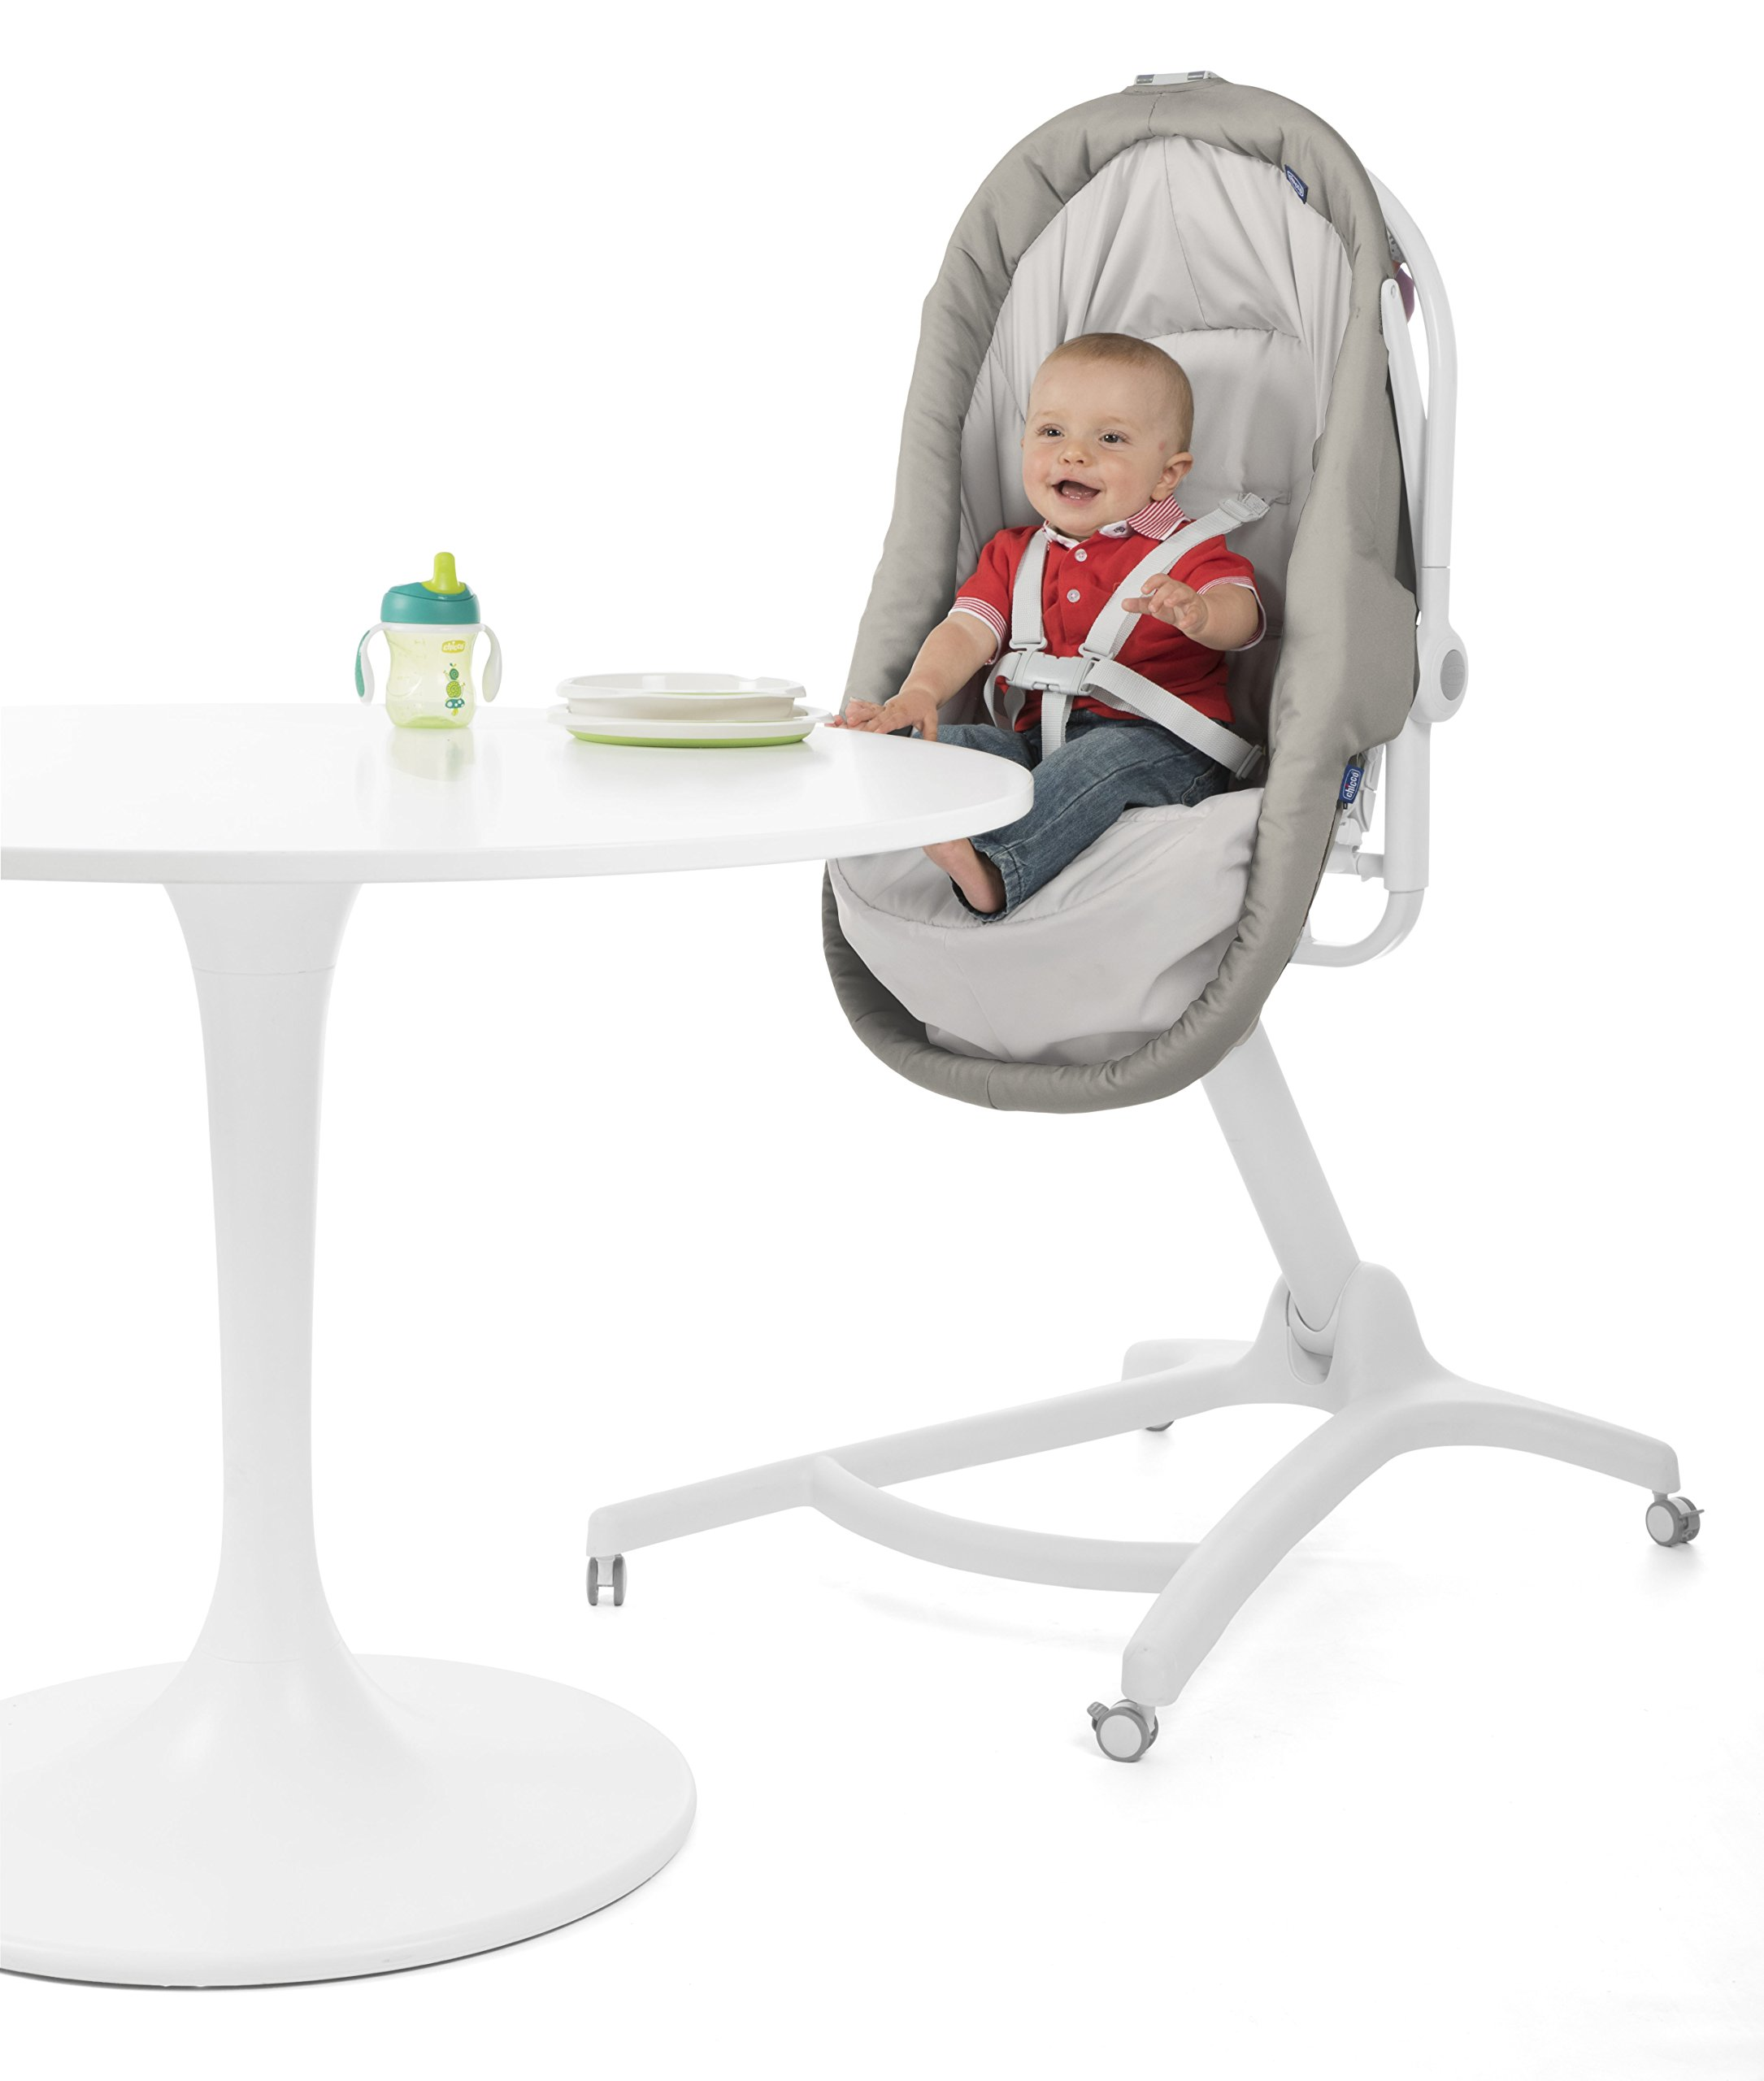 Chicco Baby Hug 4 in 1, Legend  It covers all your and your baby's needs: it is a comfy crib, a recliner from birth, a convenient highchair and finally your child's first chair from 6 months. Adjustable heights and backrest and 4 wheels Removable reducer to make the recliner suitable from birth 4